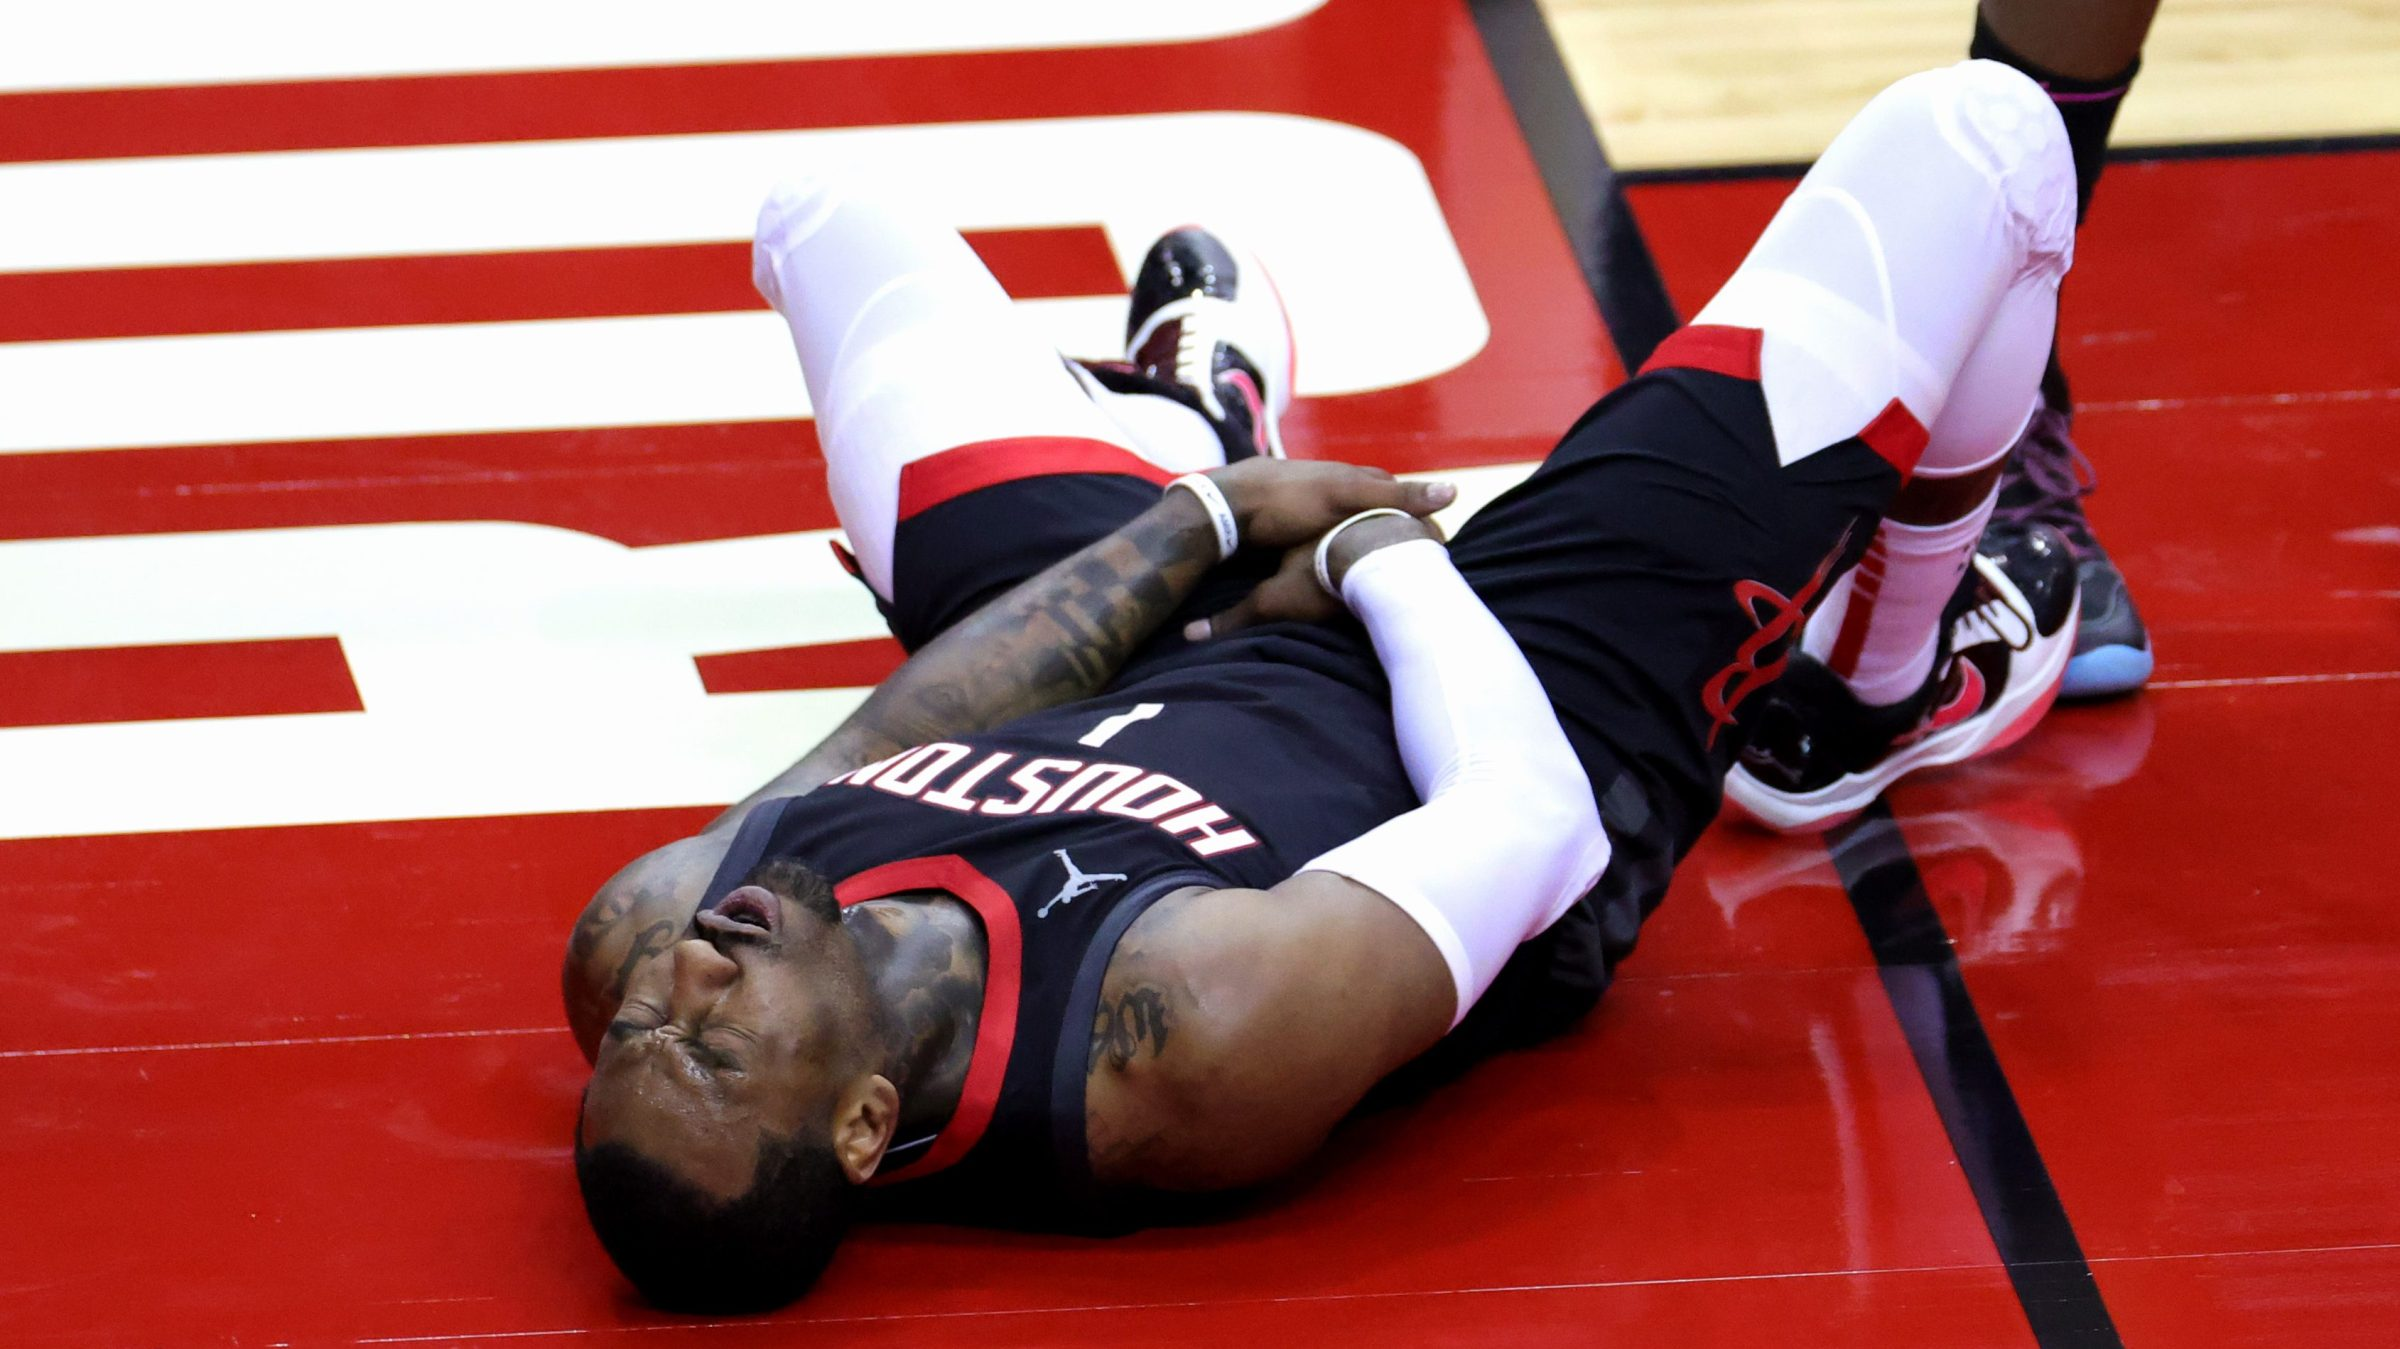 John Wall clutches his dick and balls on the floor of Rockets arena